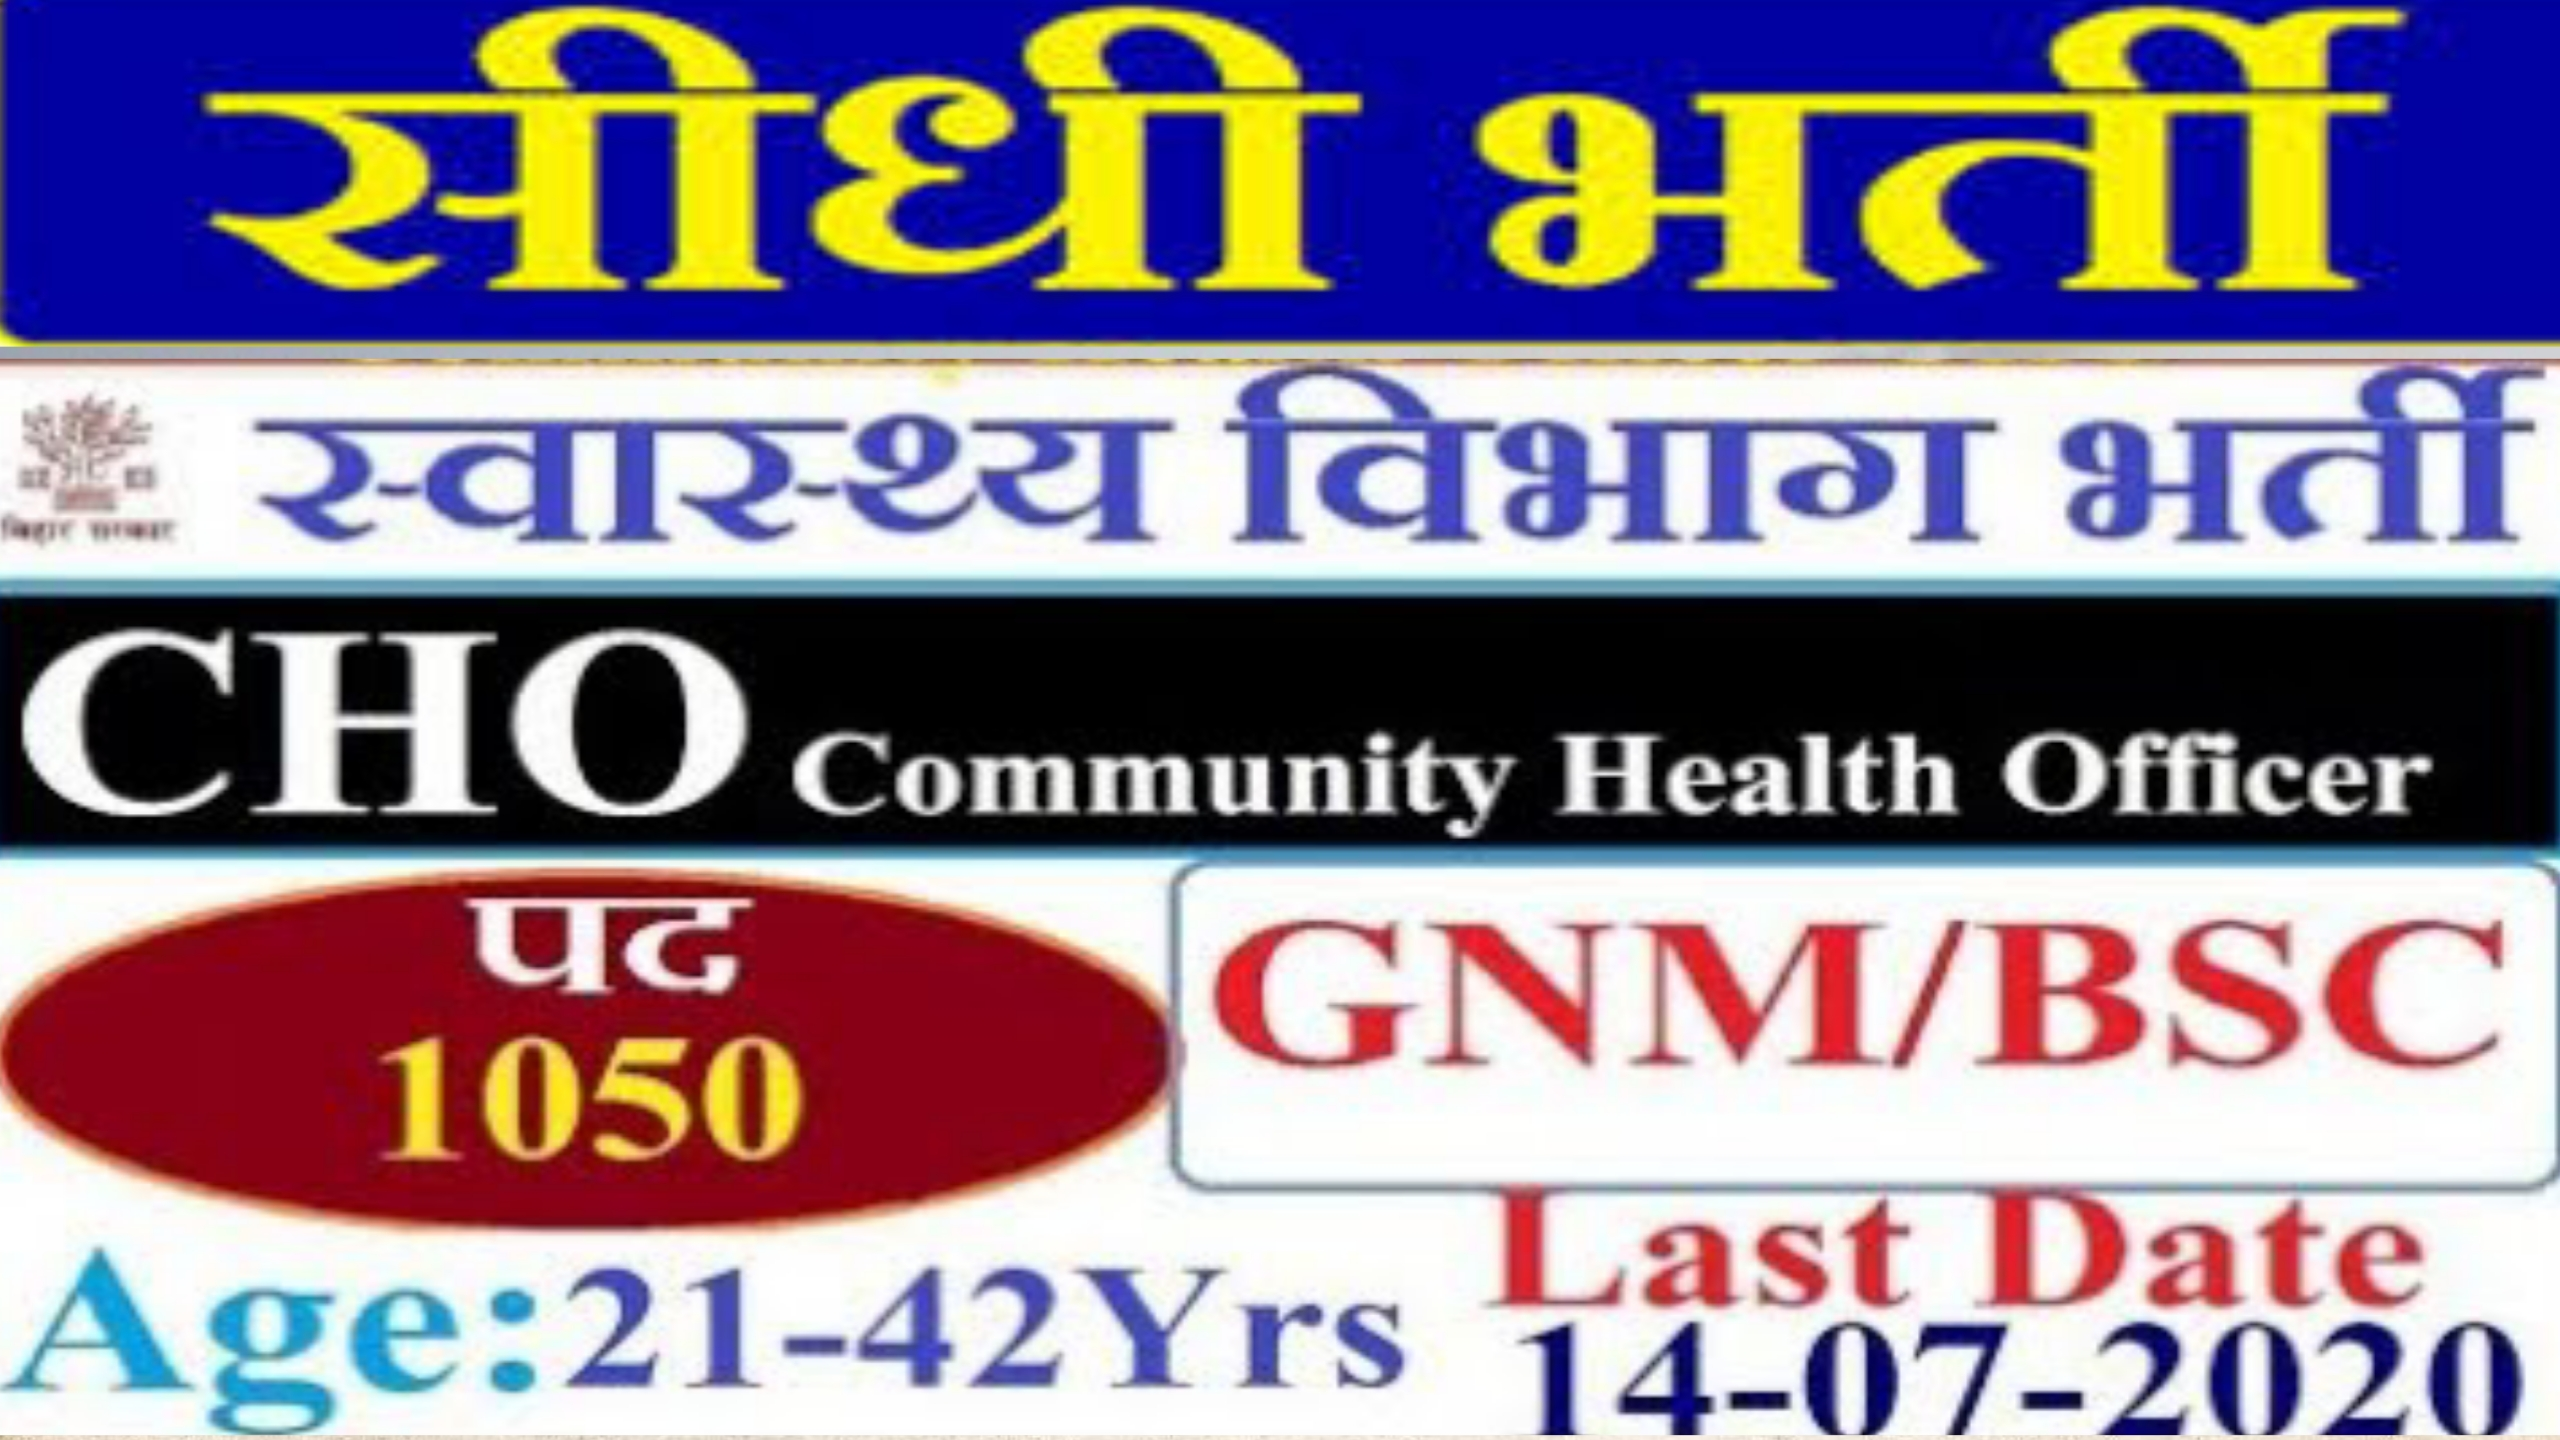 Bihar SHSB CHO Recruitment online Form 2020